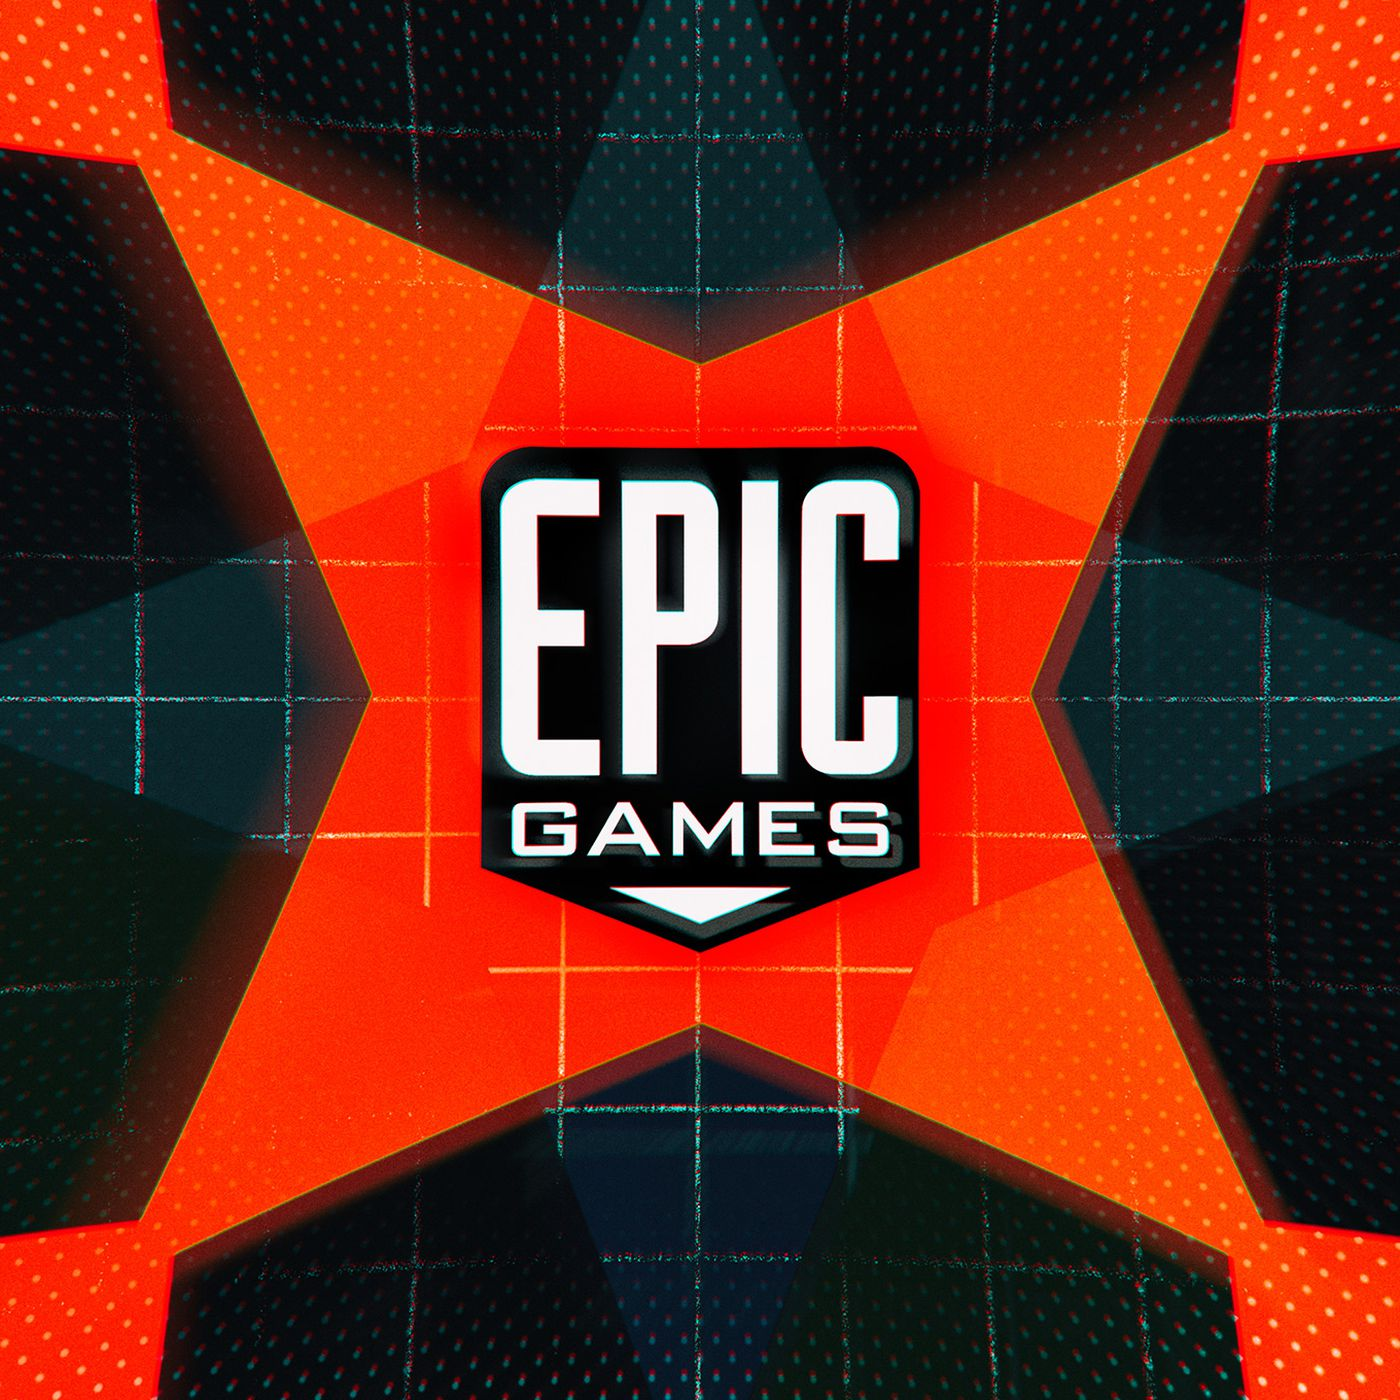 Epic Games Store Users Claimed 749 Million Free Games Last Year The Verge